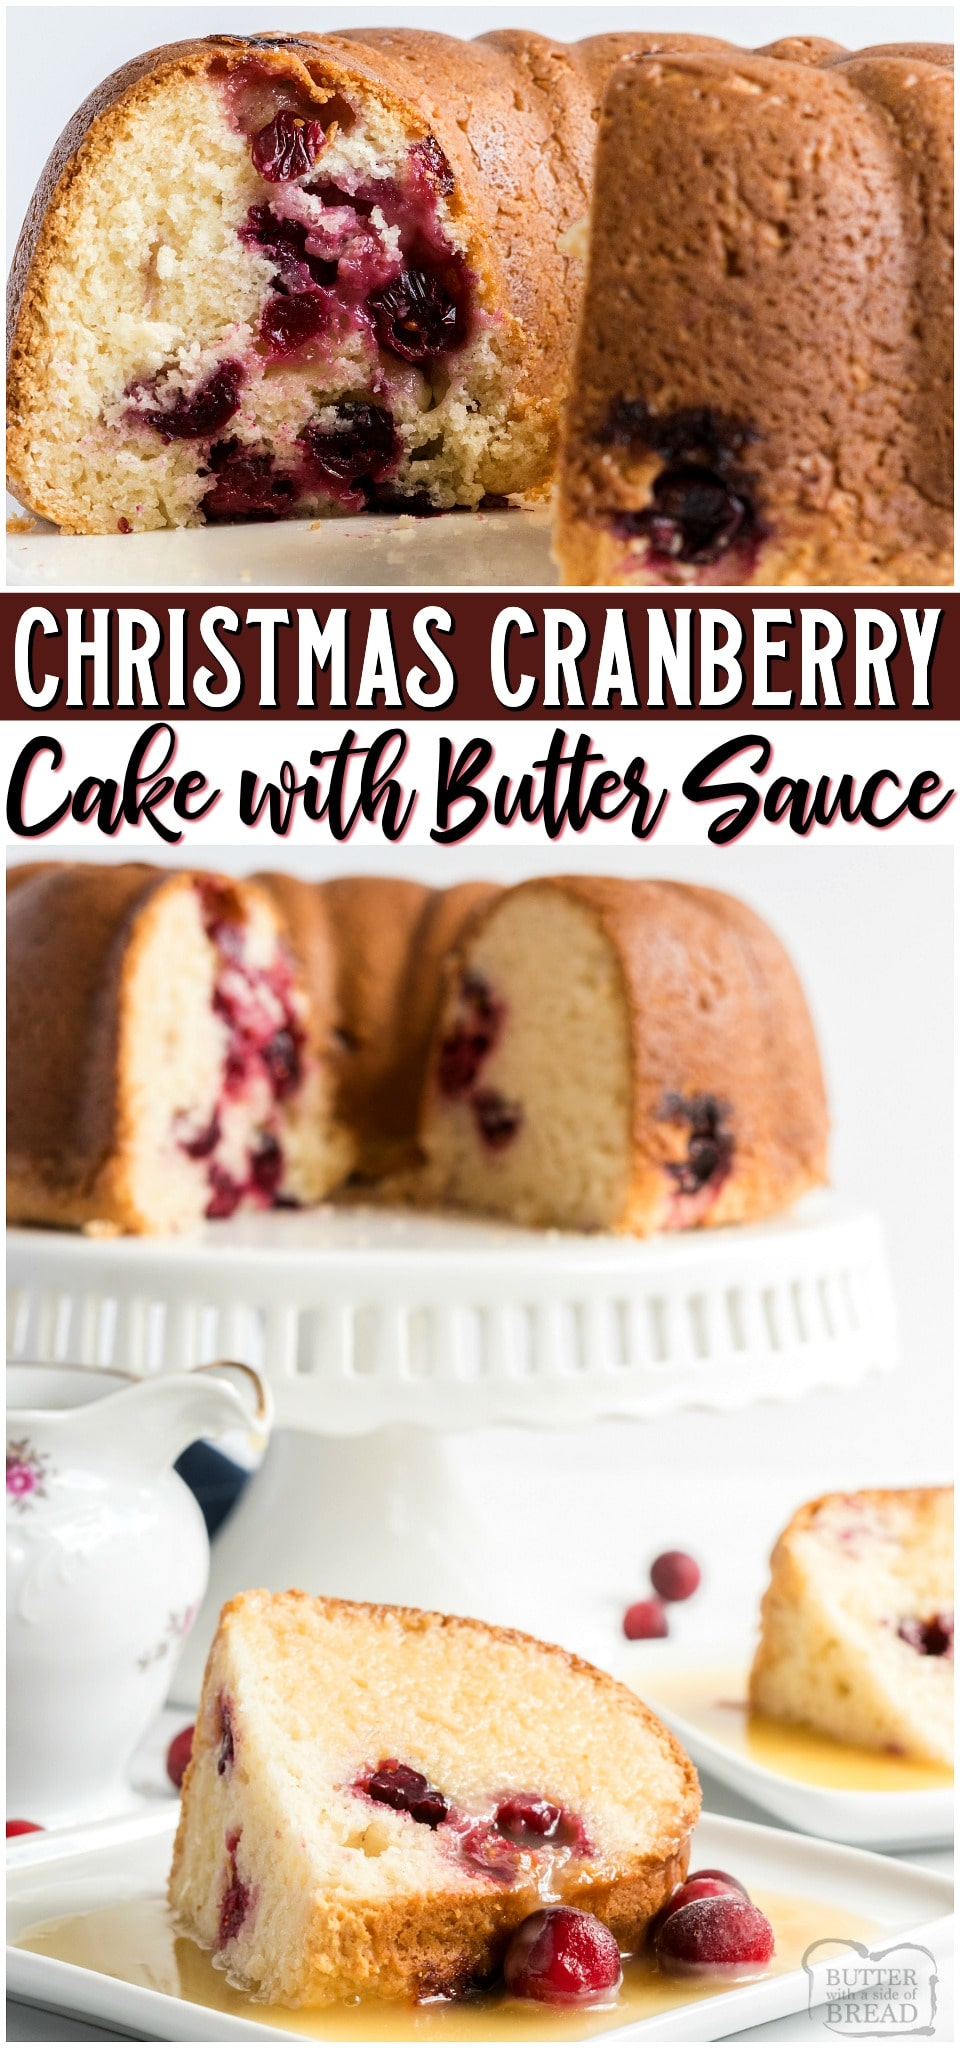 Christmas Cranberry Cake topped with a sweet butter sauce is perfect for Christmas or any occasion! Easy homemade cranberry cake recipe uses fresh cranberries for a delightful, flavorful dessert.#cake #Christmas #cranberry #noeggs #dessert #baking #holidays #easyrecipe from BUTTER WITH A SIDE OF BREAD